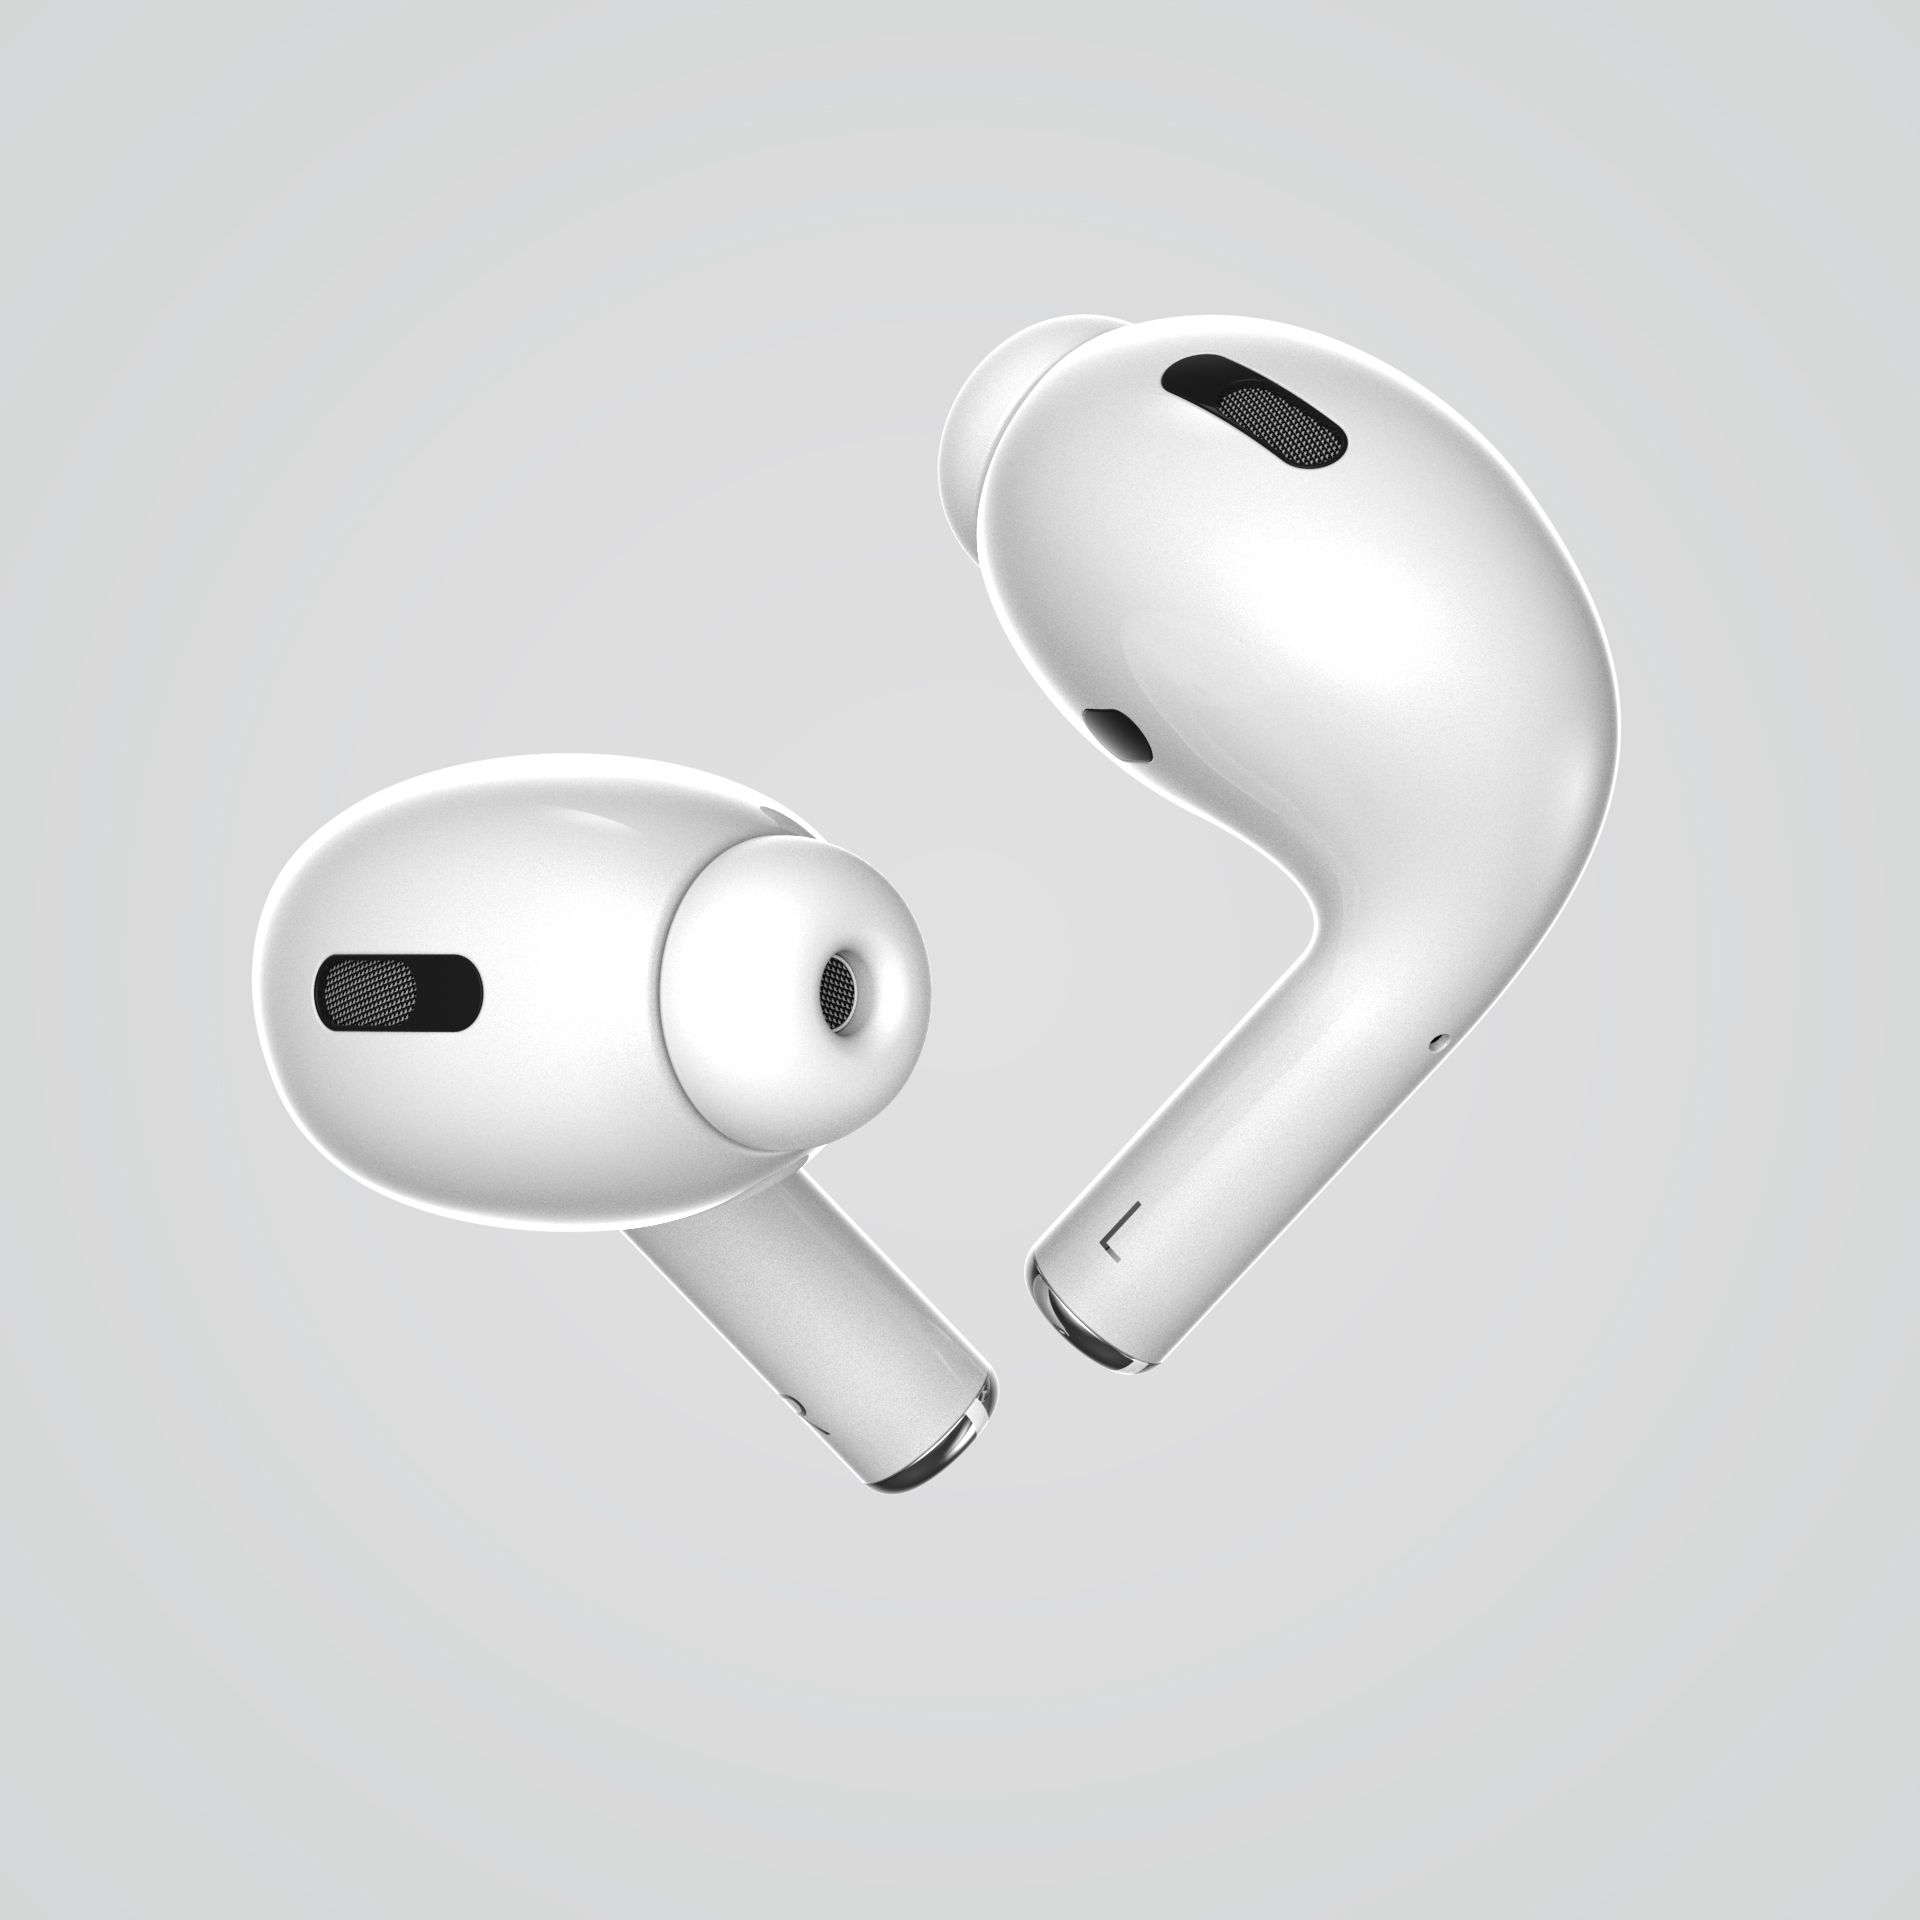 The Cheapest Airpods Sales And Deals In April 2021 Earbuds Airpods Pro Noise Cancelling